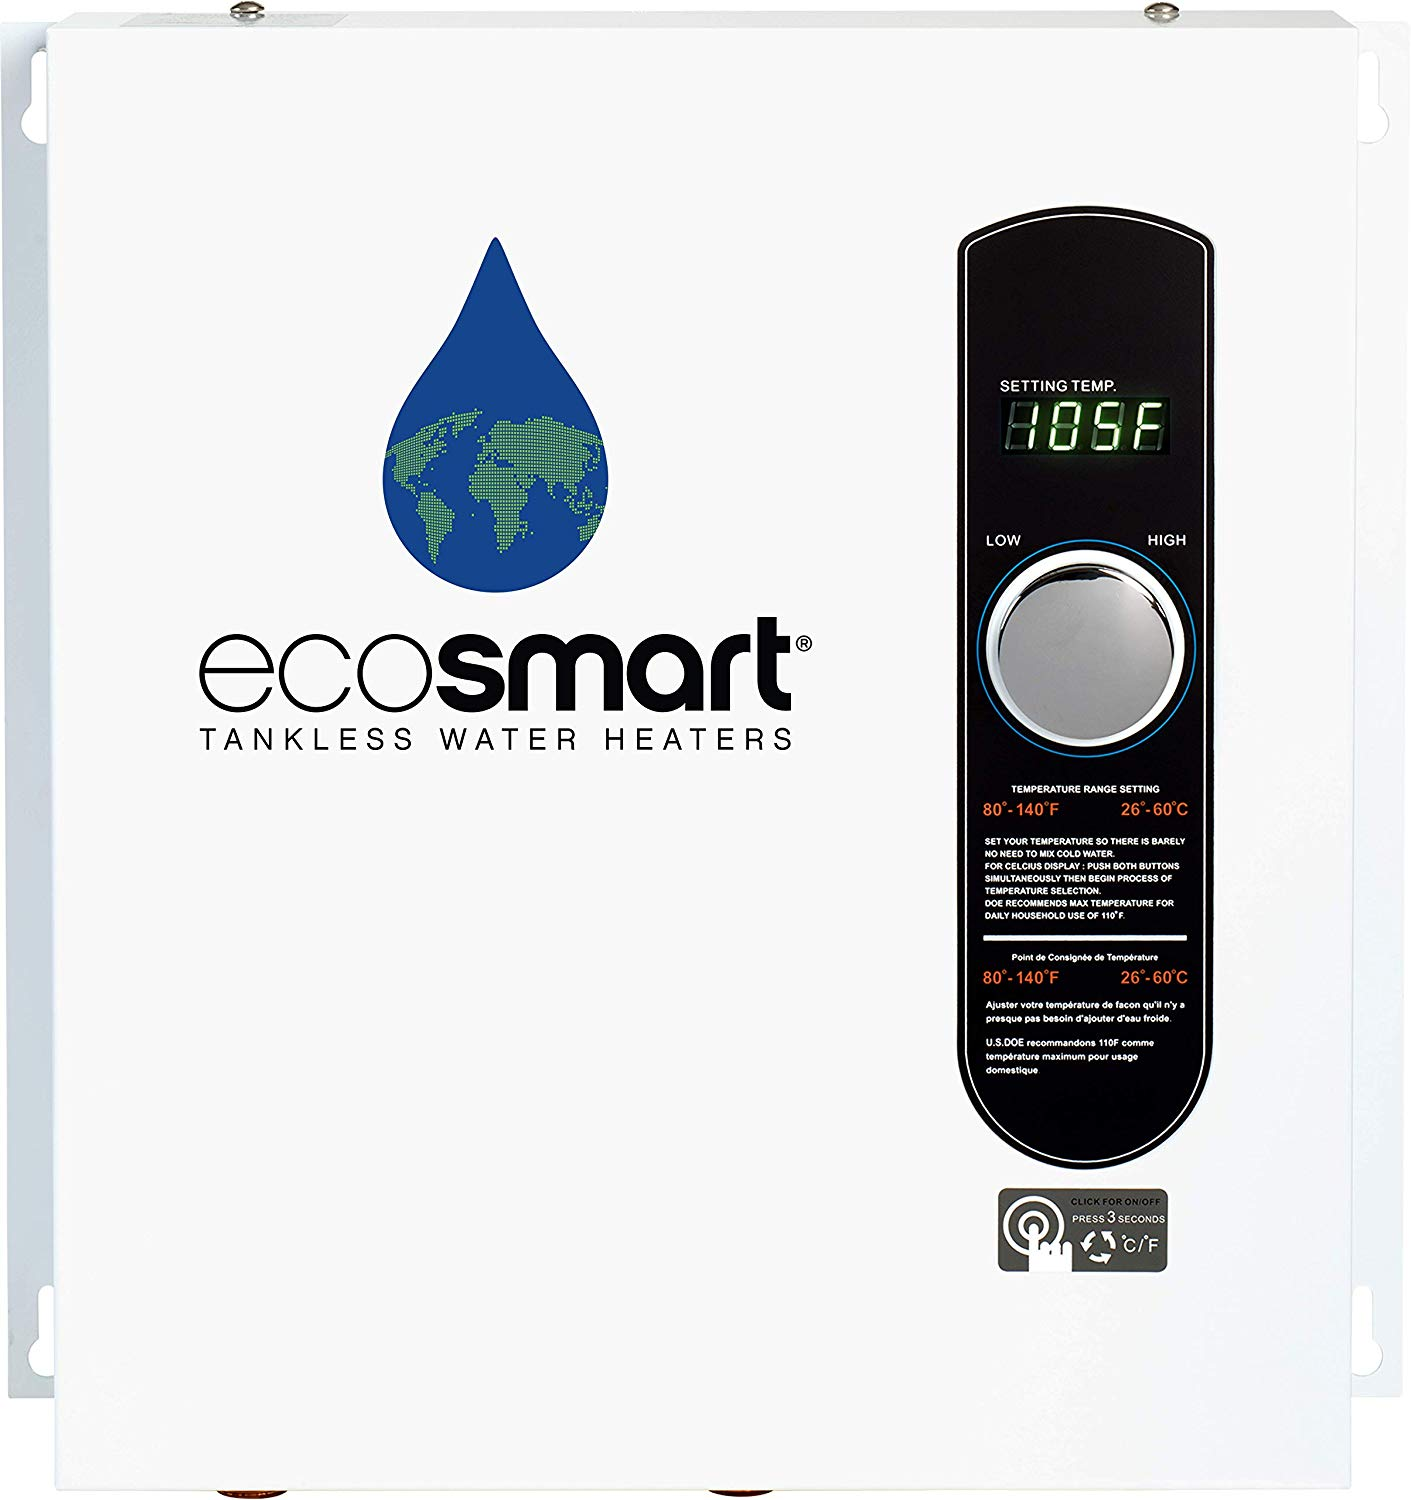 Ecosmart Tankless Water Heater and How Does it Work?